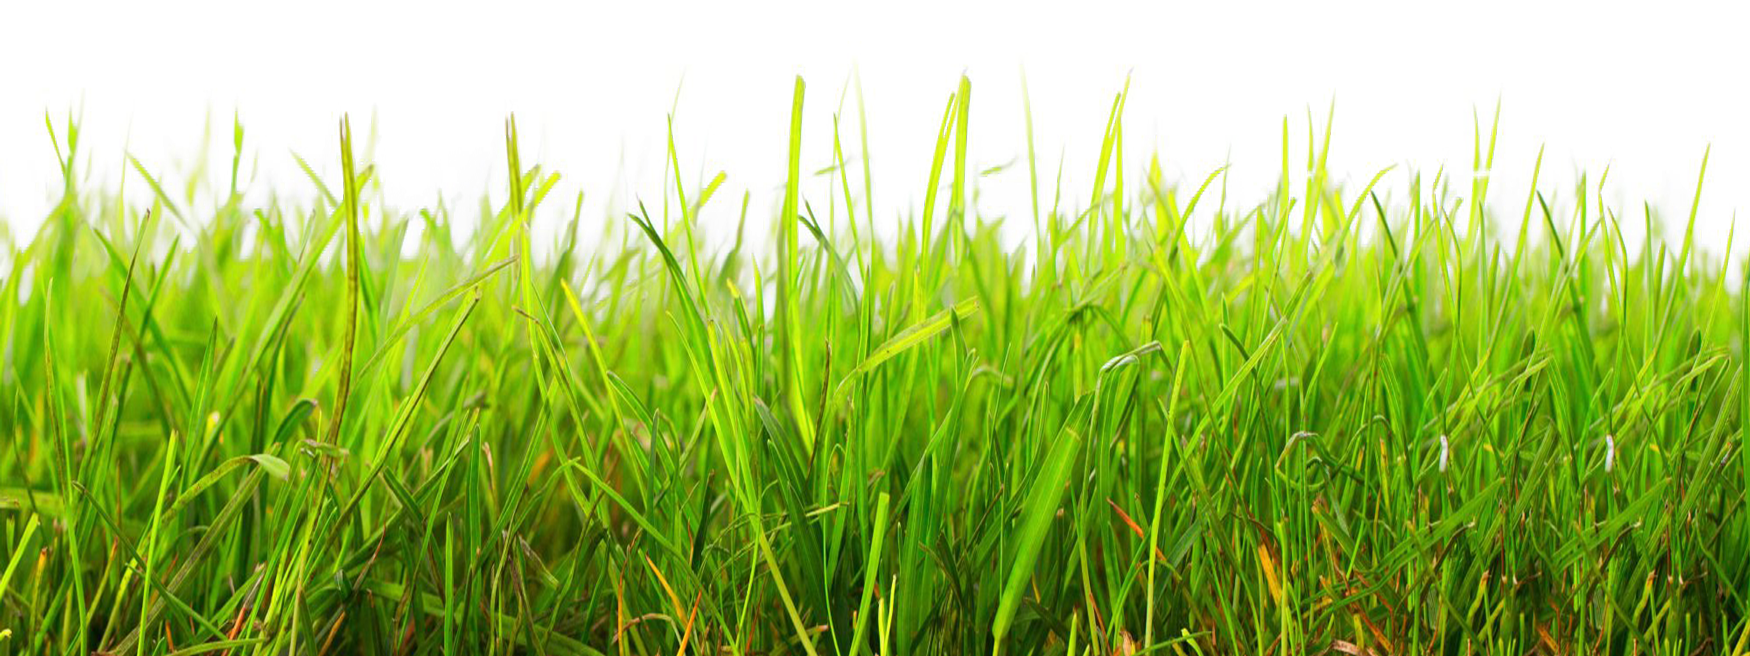 Grass Png Image Grass Grass Drawing Image